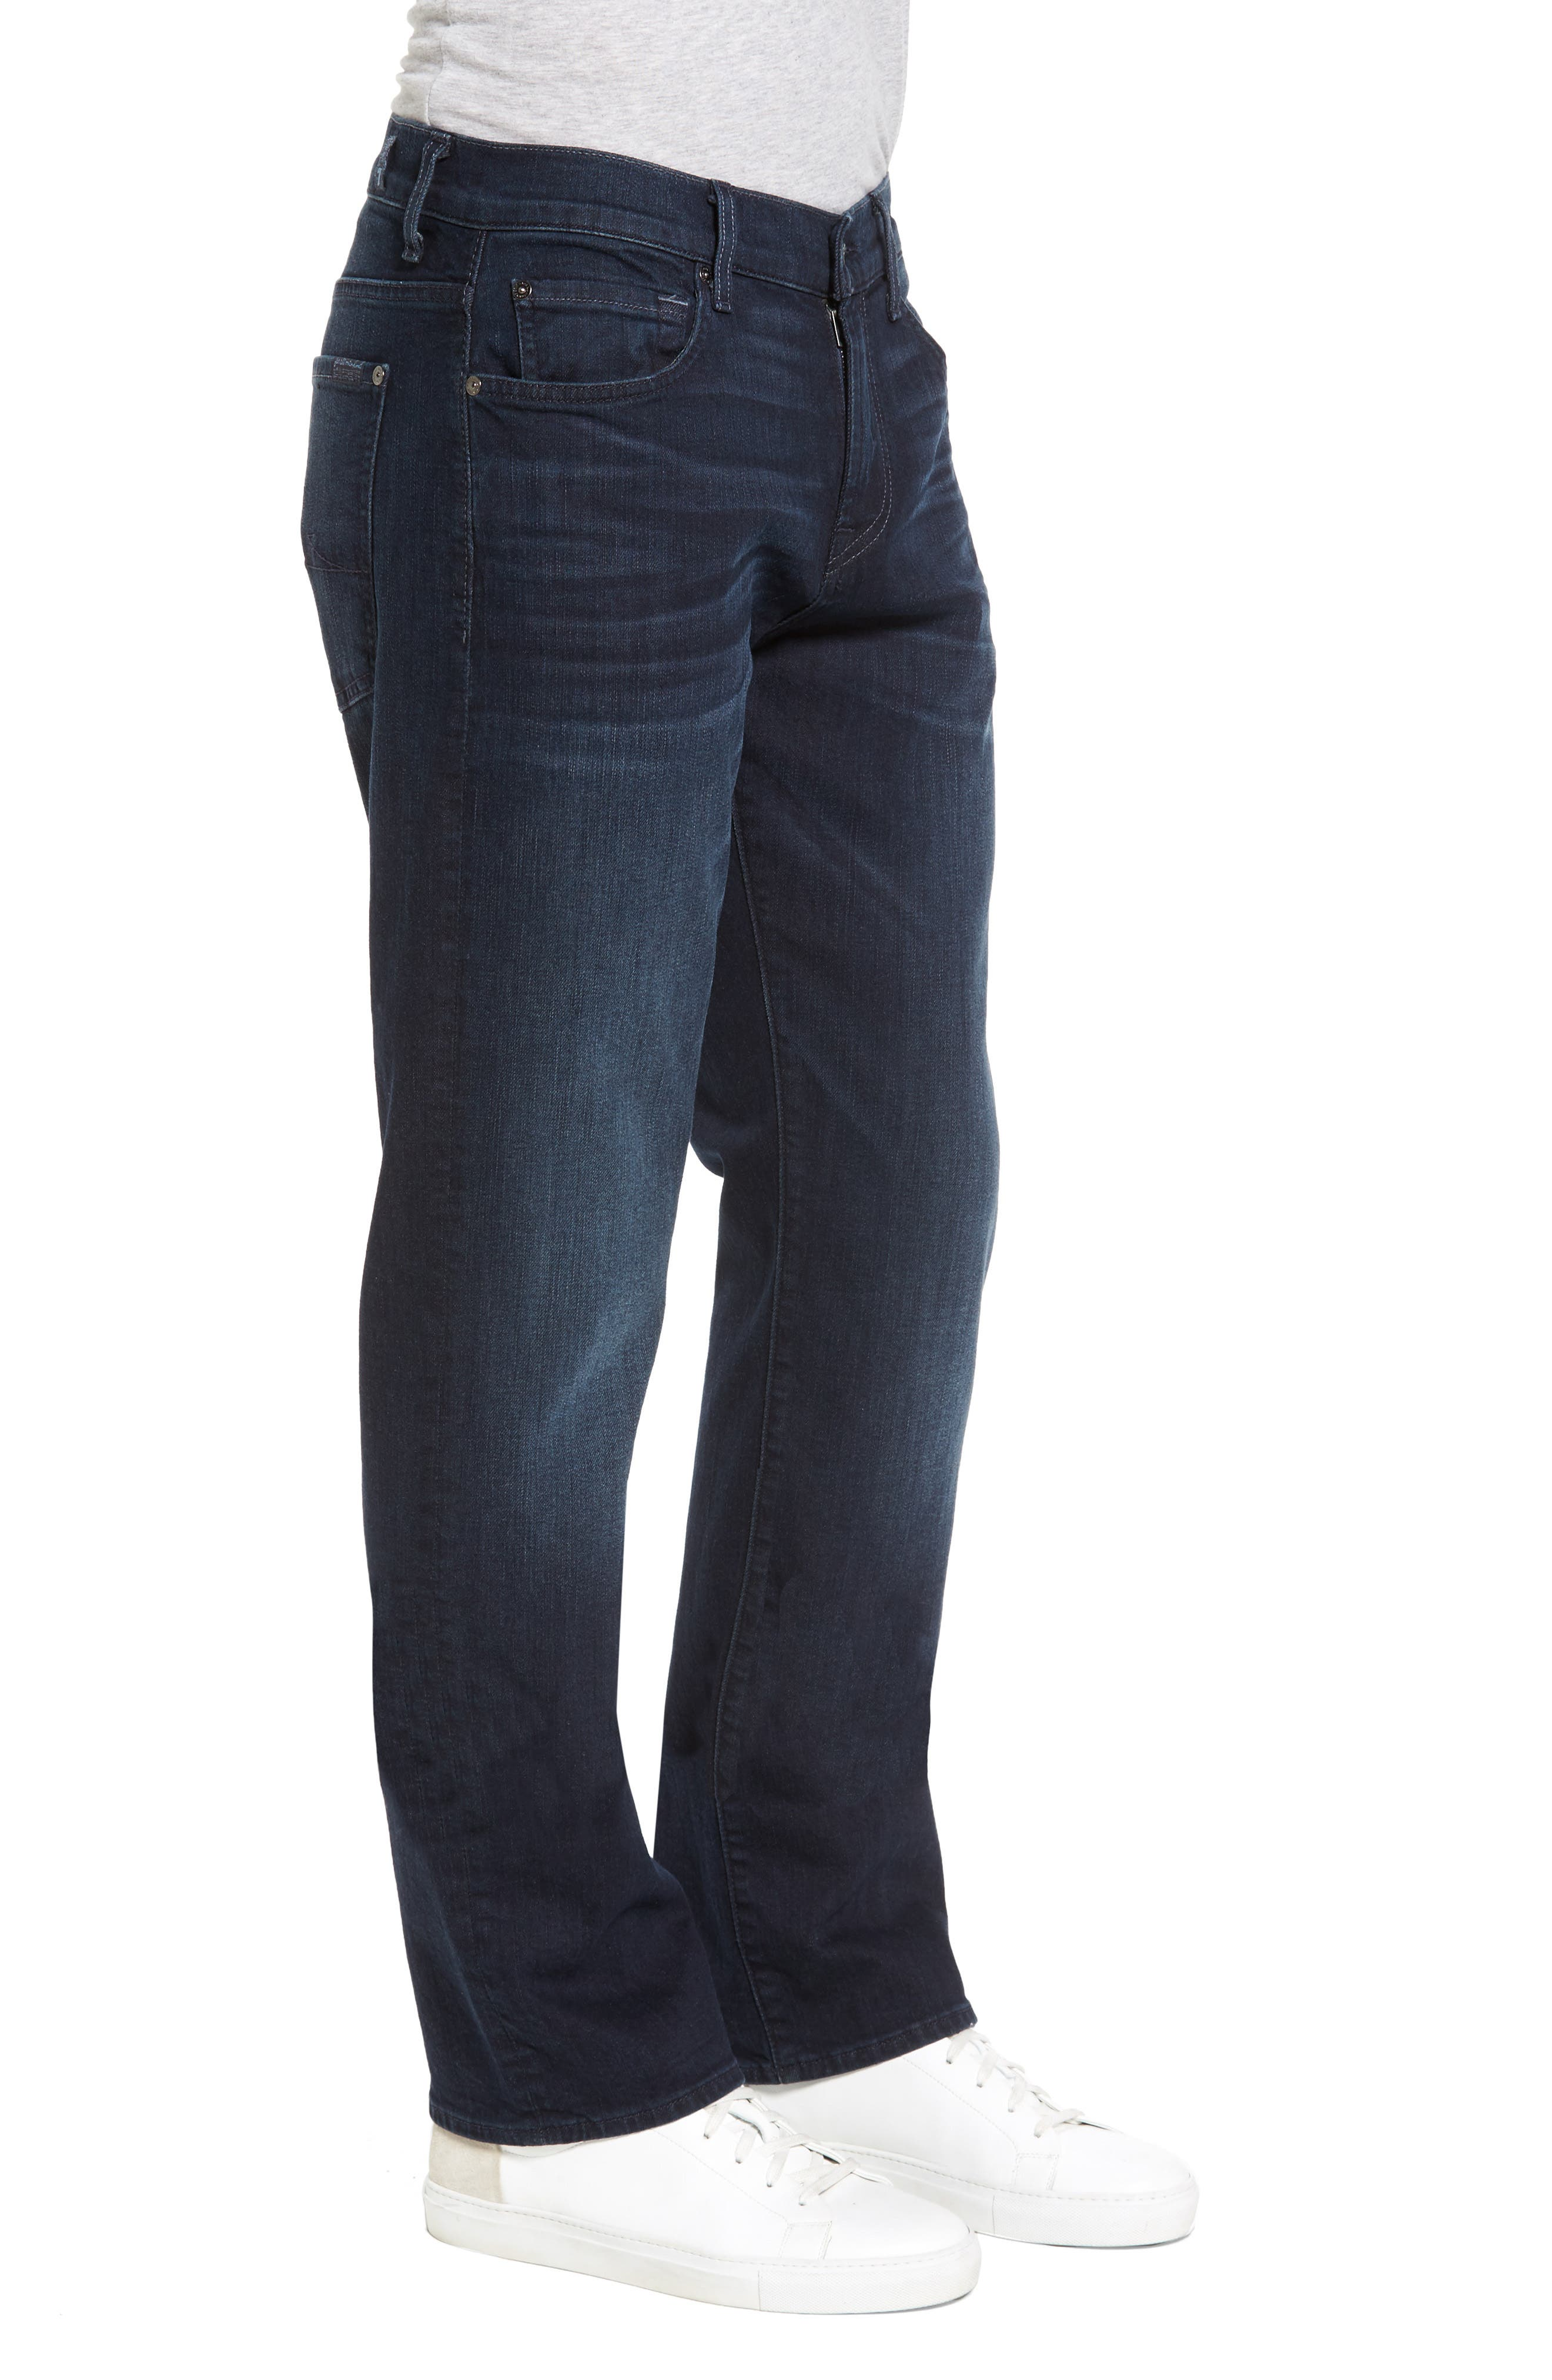 7 FOR ALL MANKIND<SUP>®</SUP>, Luxe Performance - Carsen Straight Leg Jeans, Alternate thumbnail 4, color, DARK CURRENT